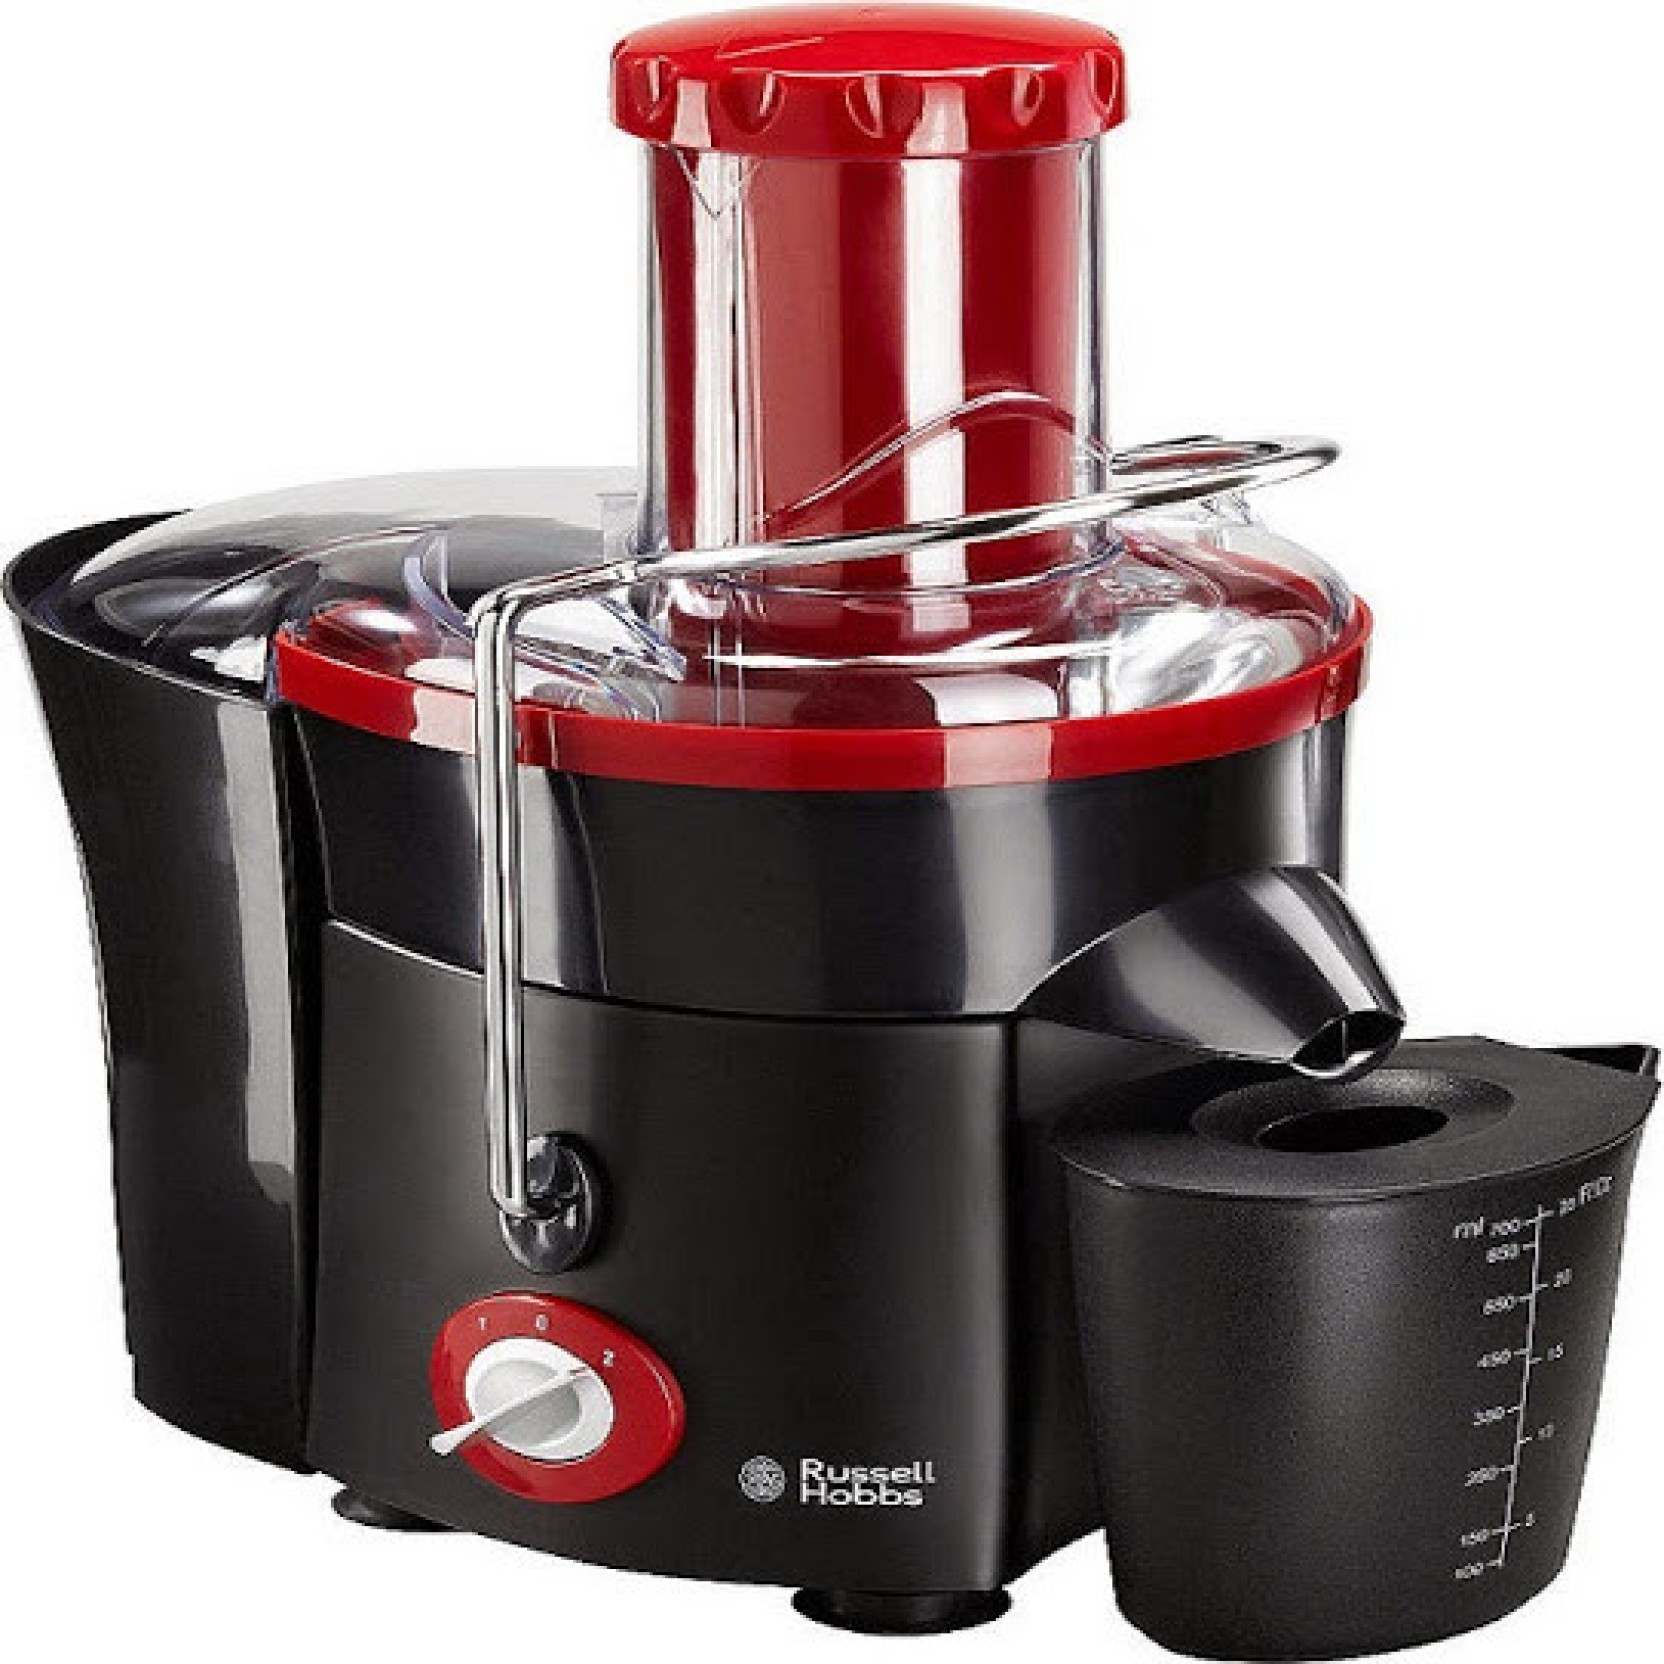 russell hobbs ru 20360 550 w juicer price in india buy russell hobbs ru 20360 550 w juicer. Black Bedroom Furniture Sets. Home Design Ideas